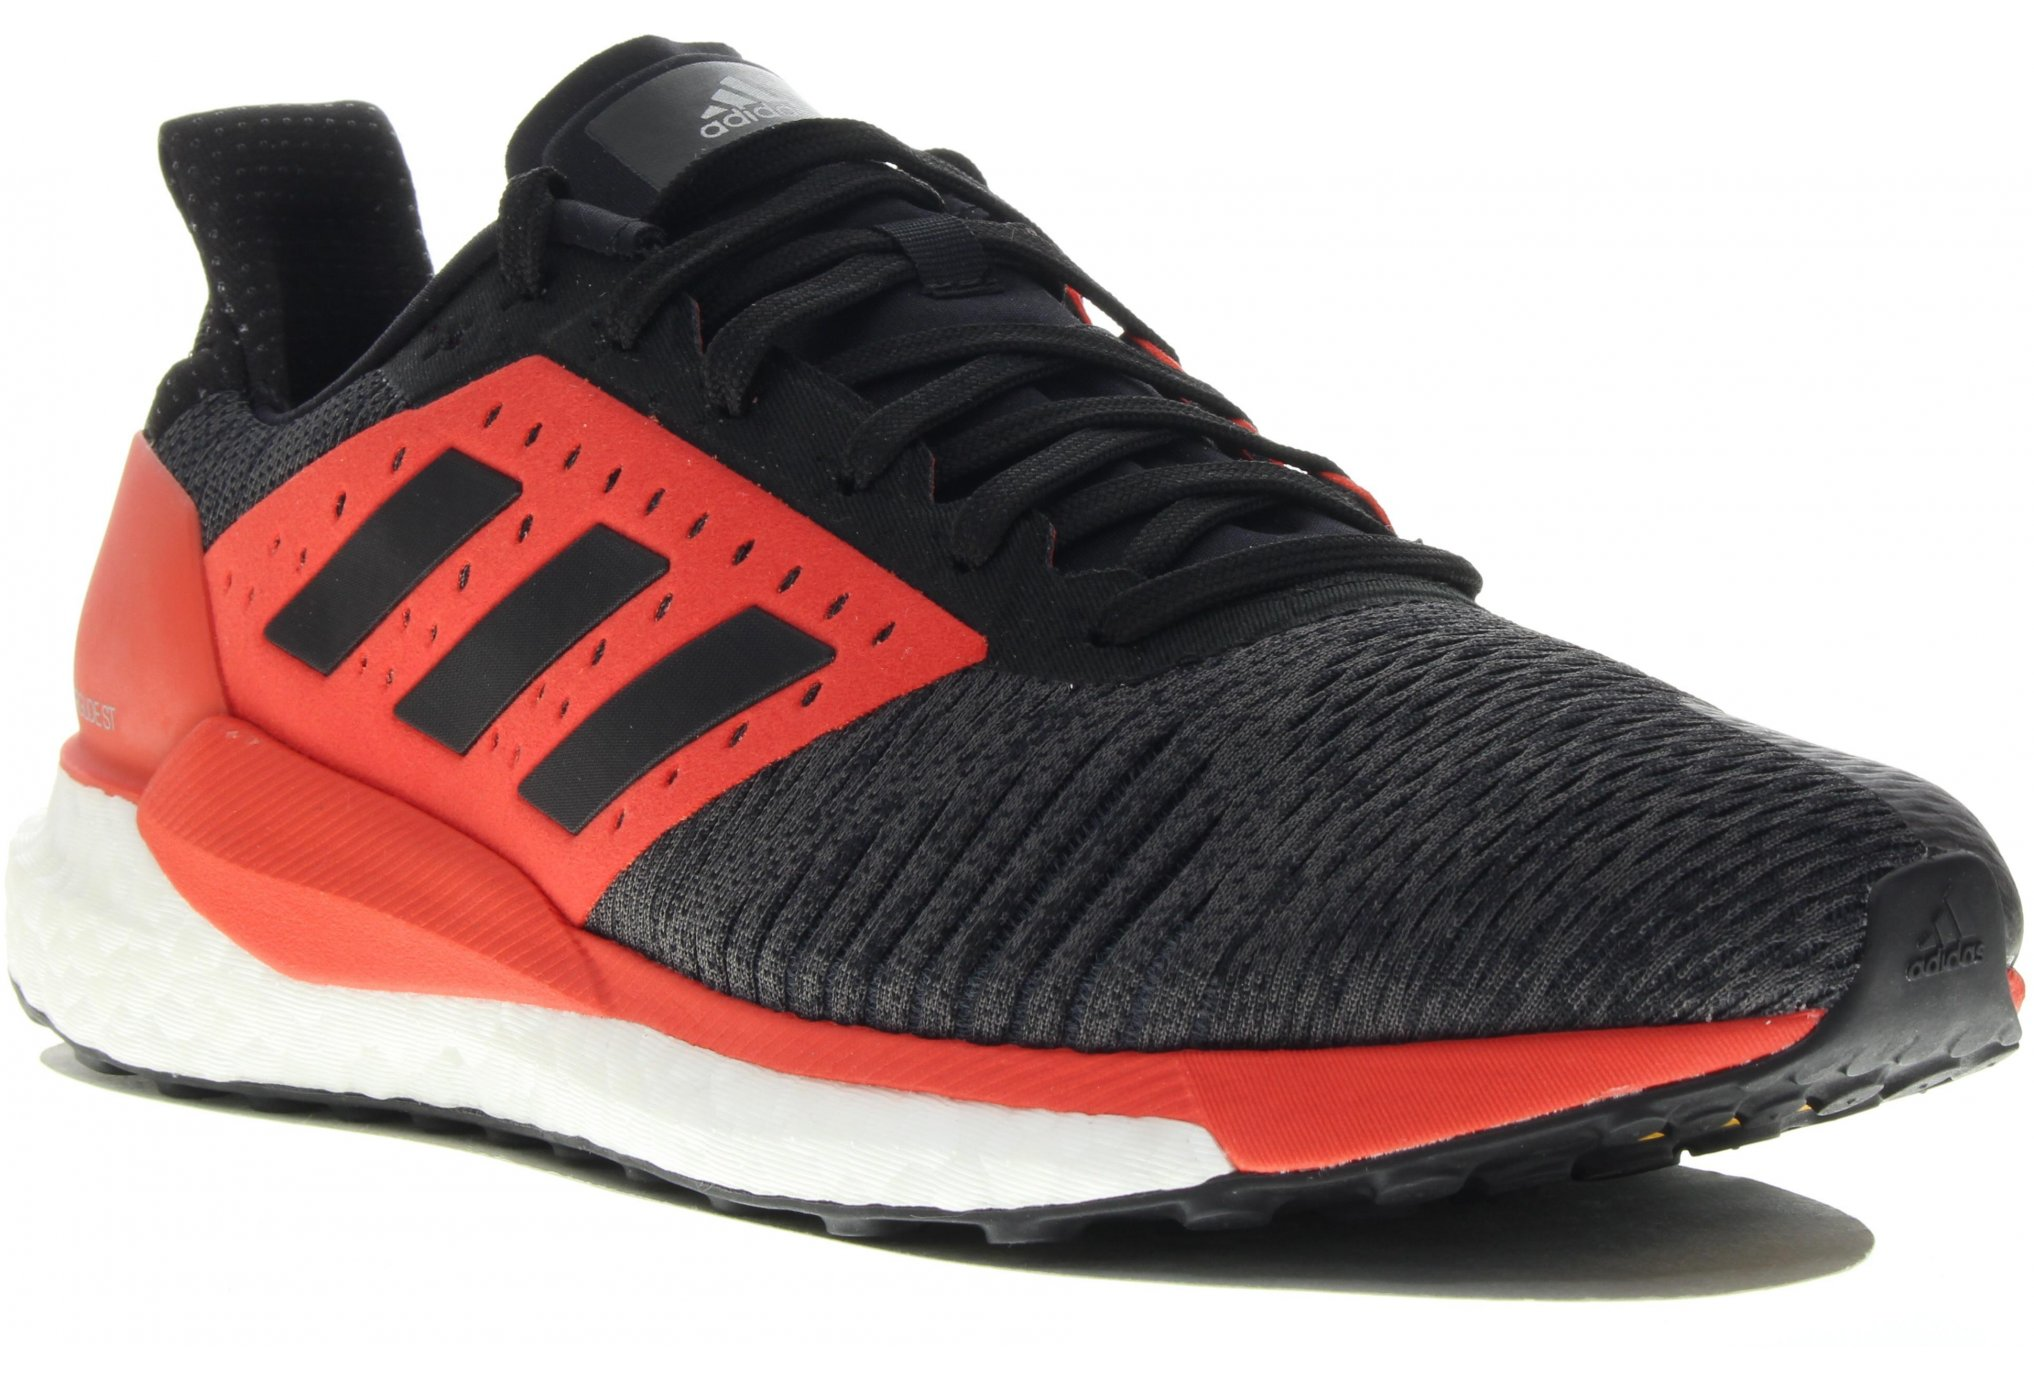 Adidas Solar glide st m chaussures homme